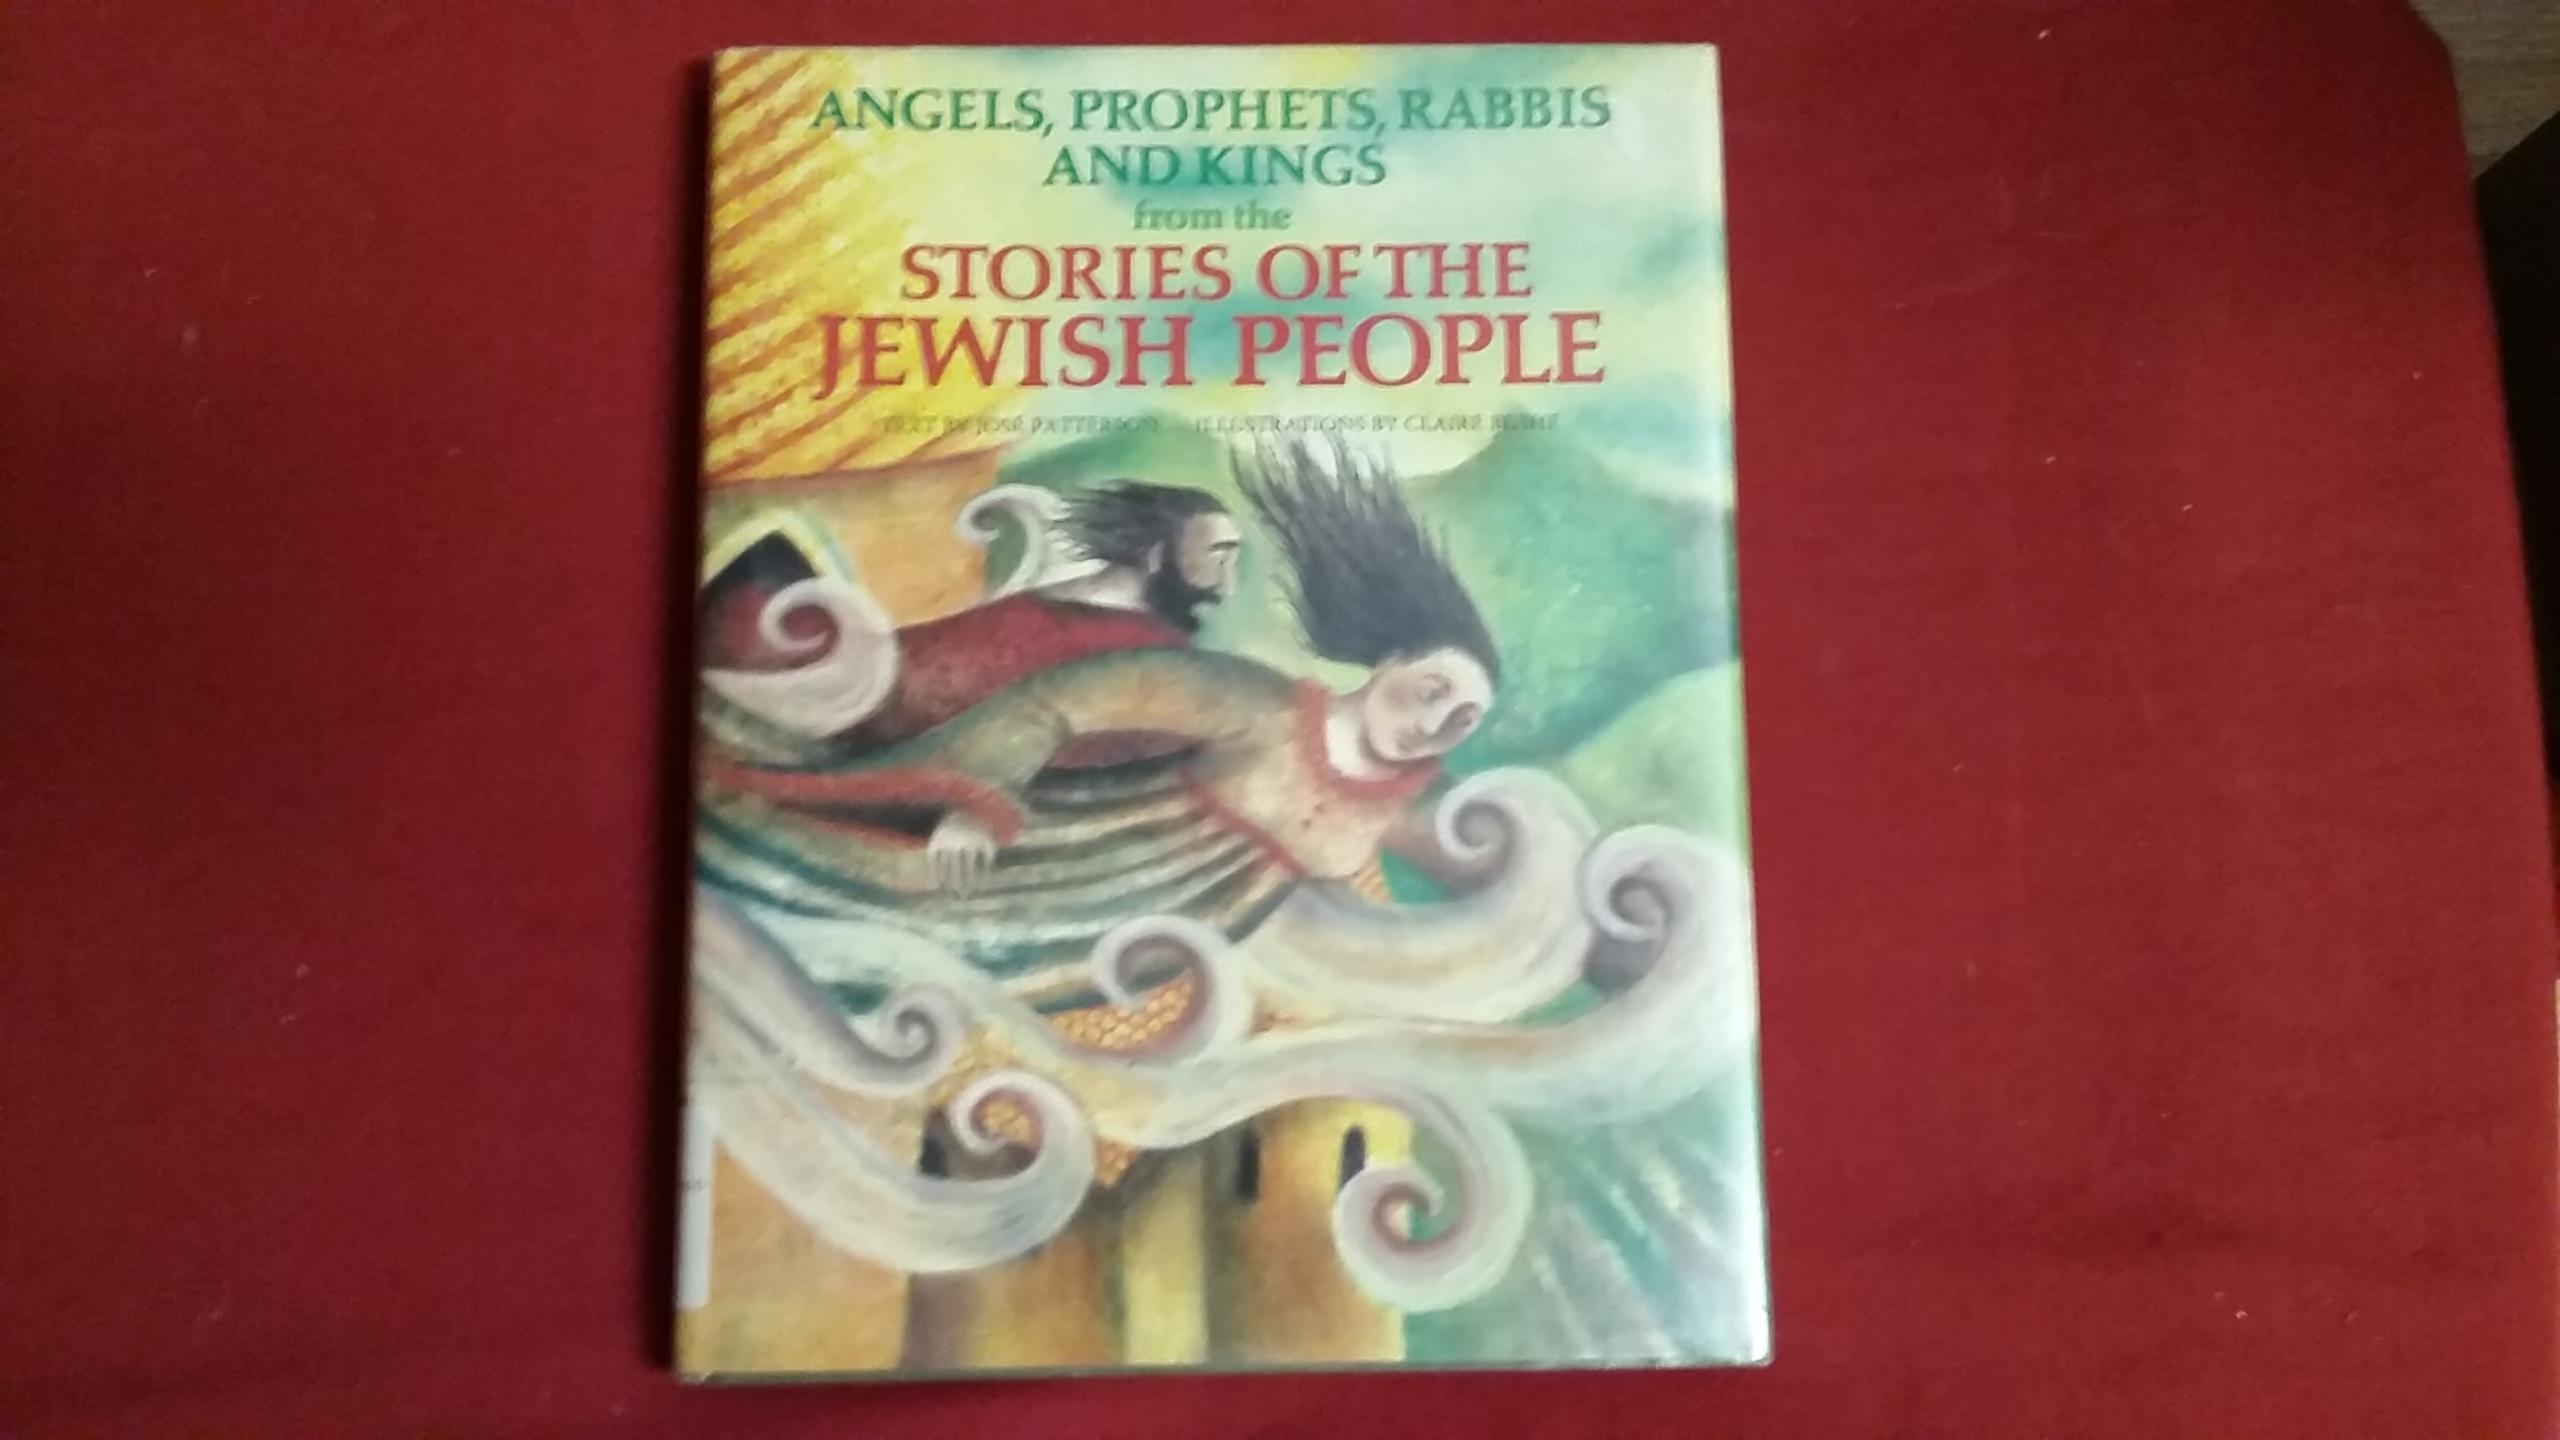 Angels, Prophets, Rabbis & Kings from the